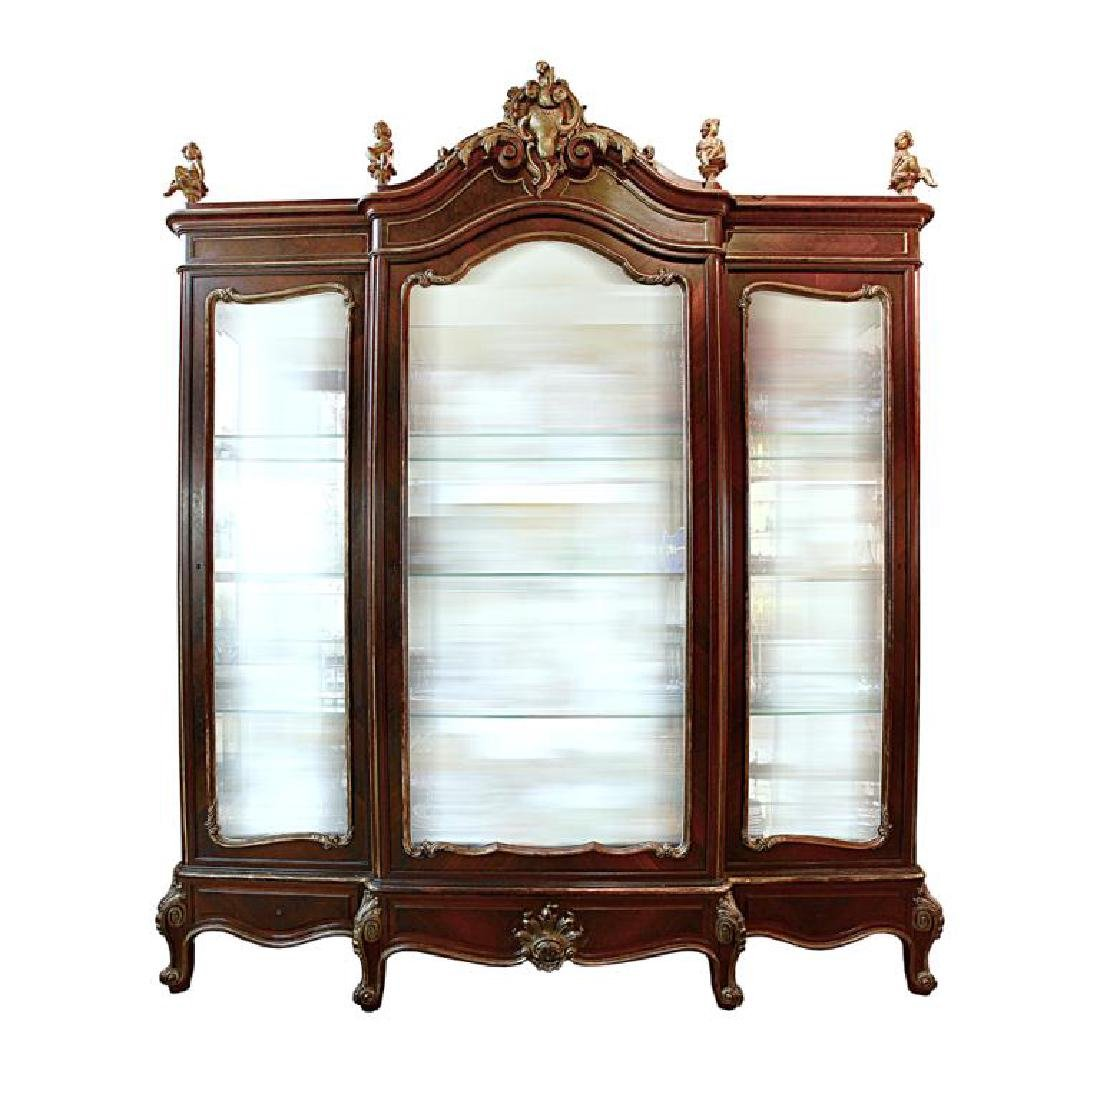 19TH CENTURY ORMOLU-MOUNTED FRENCH SHOW CABINET